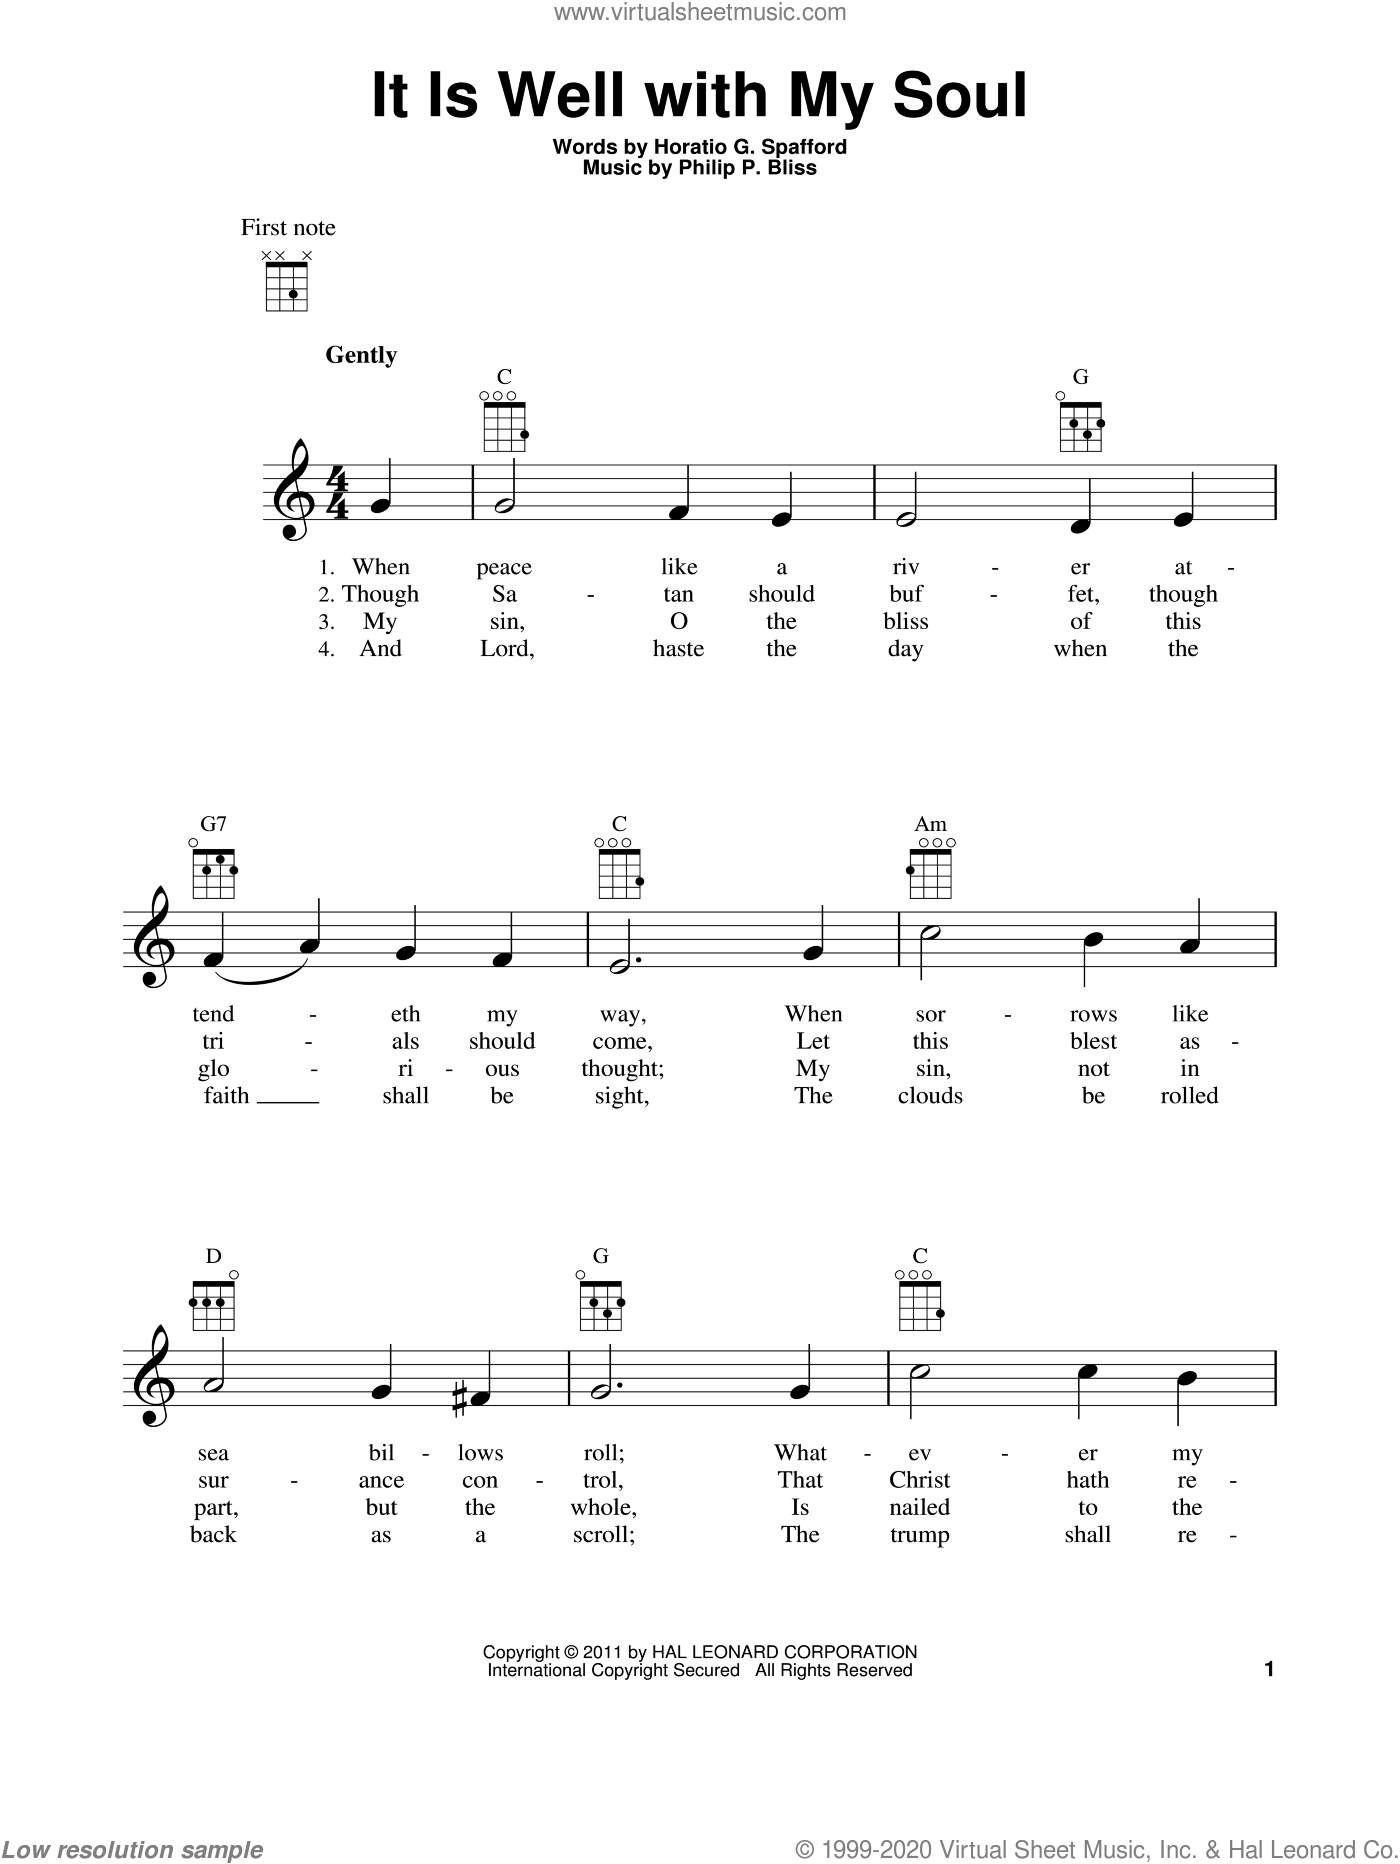 It Is Well With My Soul sheet music for ukulele by Philip P. Bliss and Horatio G. Spafford, intermediate skill level